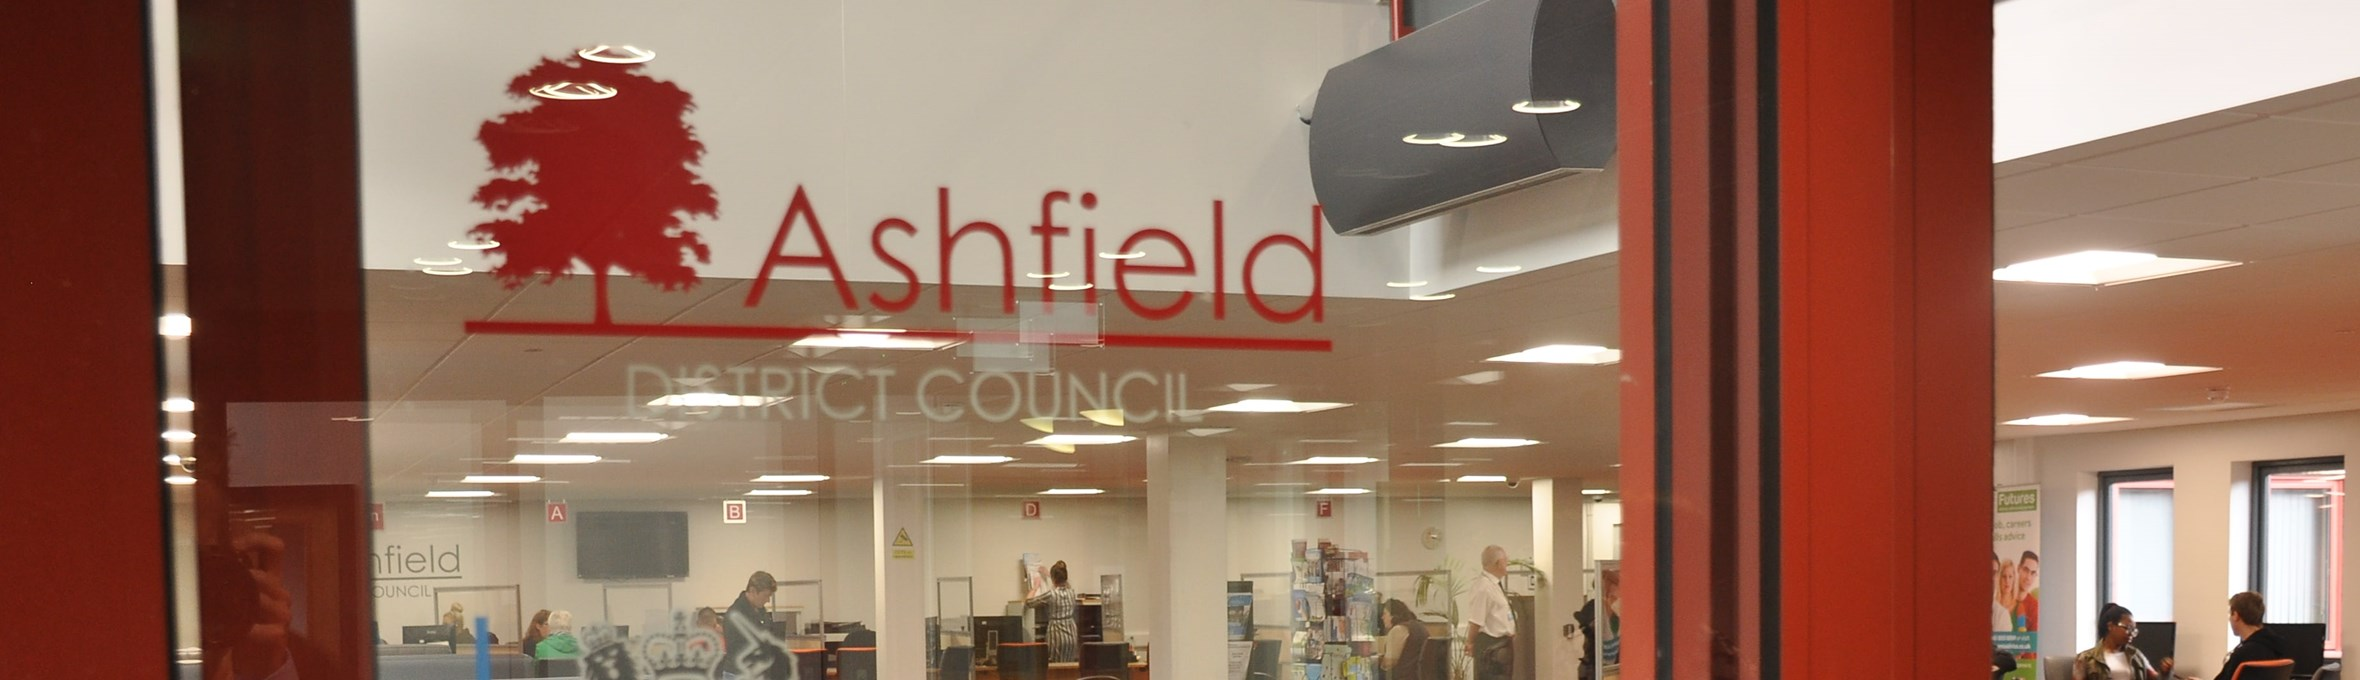 Benefits Council Tax Find Out About Benefits Ashfield District Council